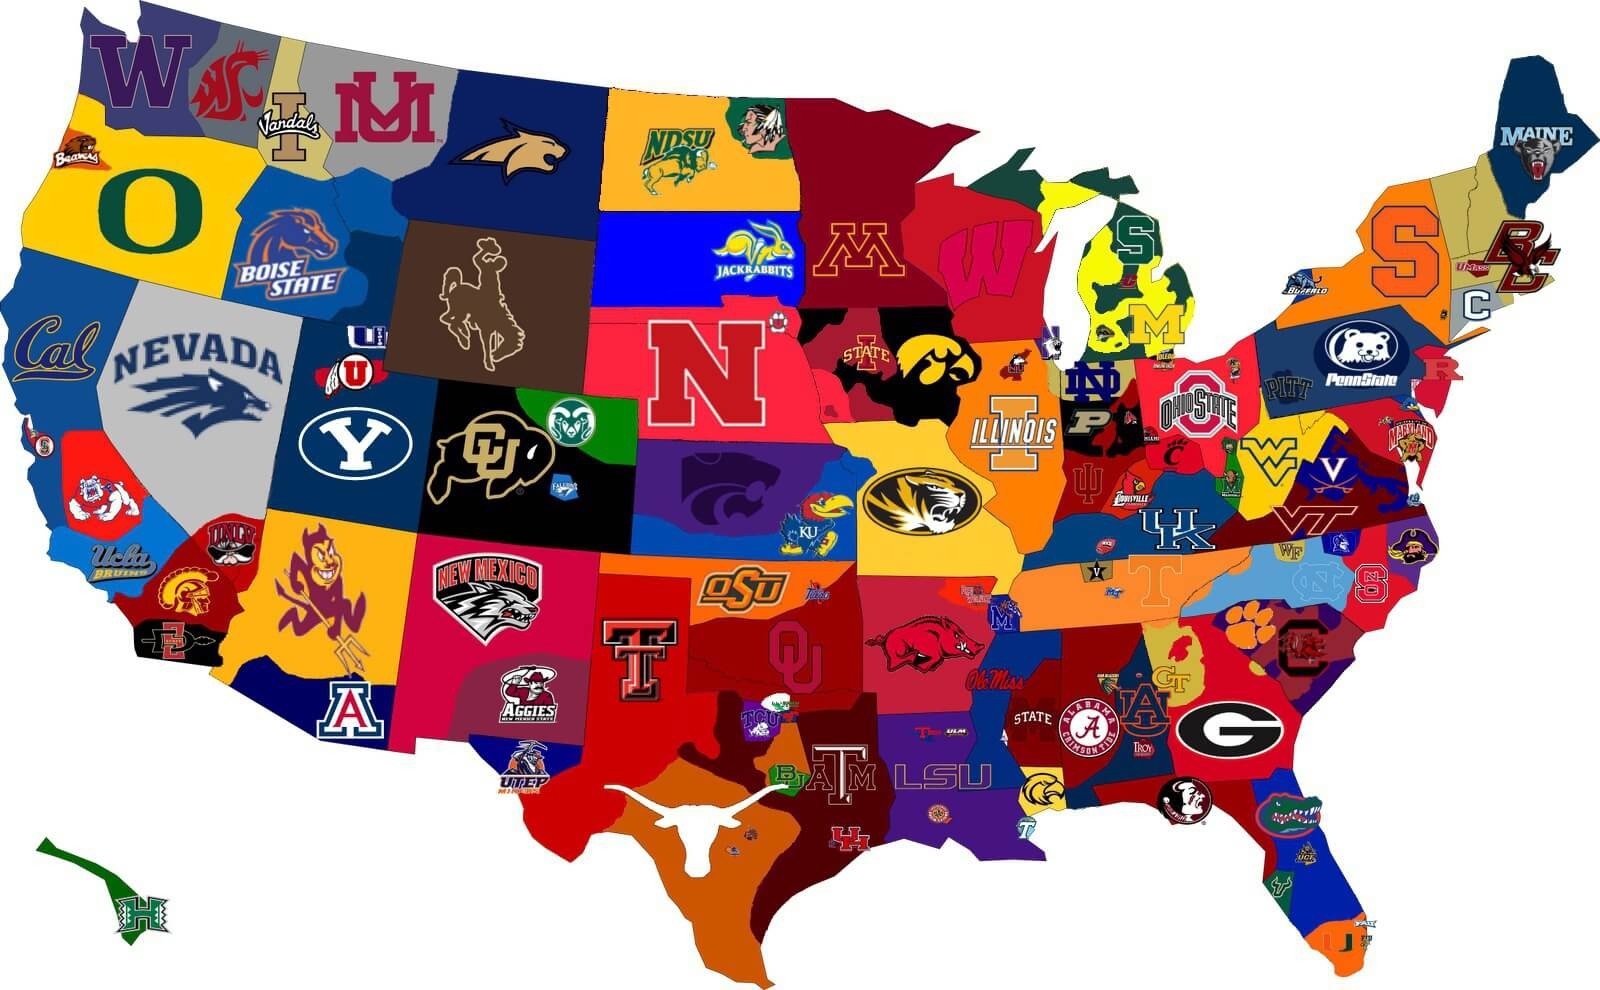 NCAA FOOTBALL RANKINGS MAP